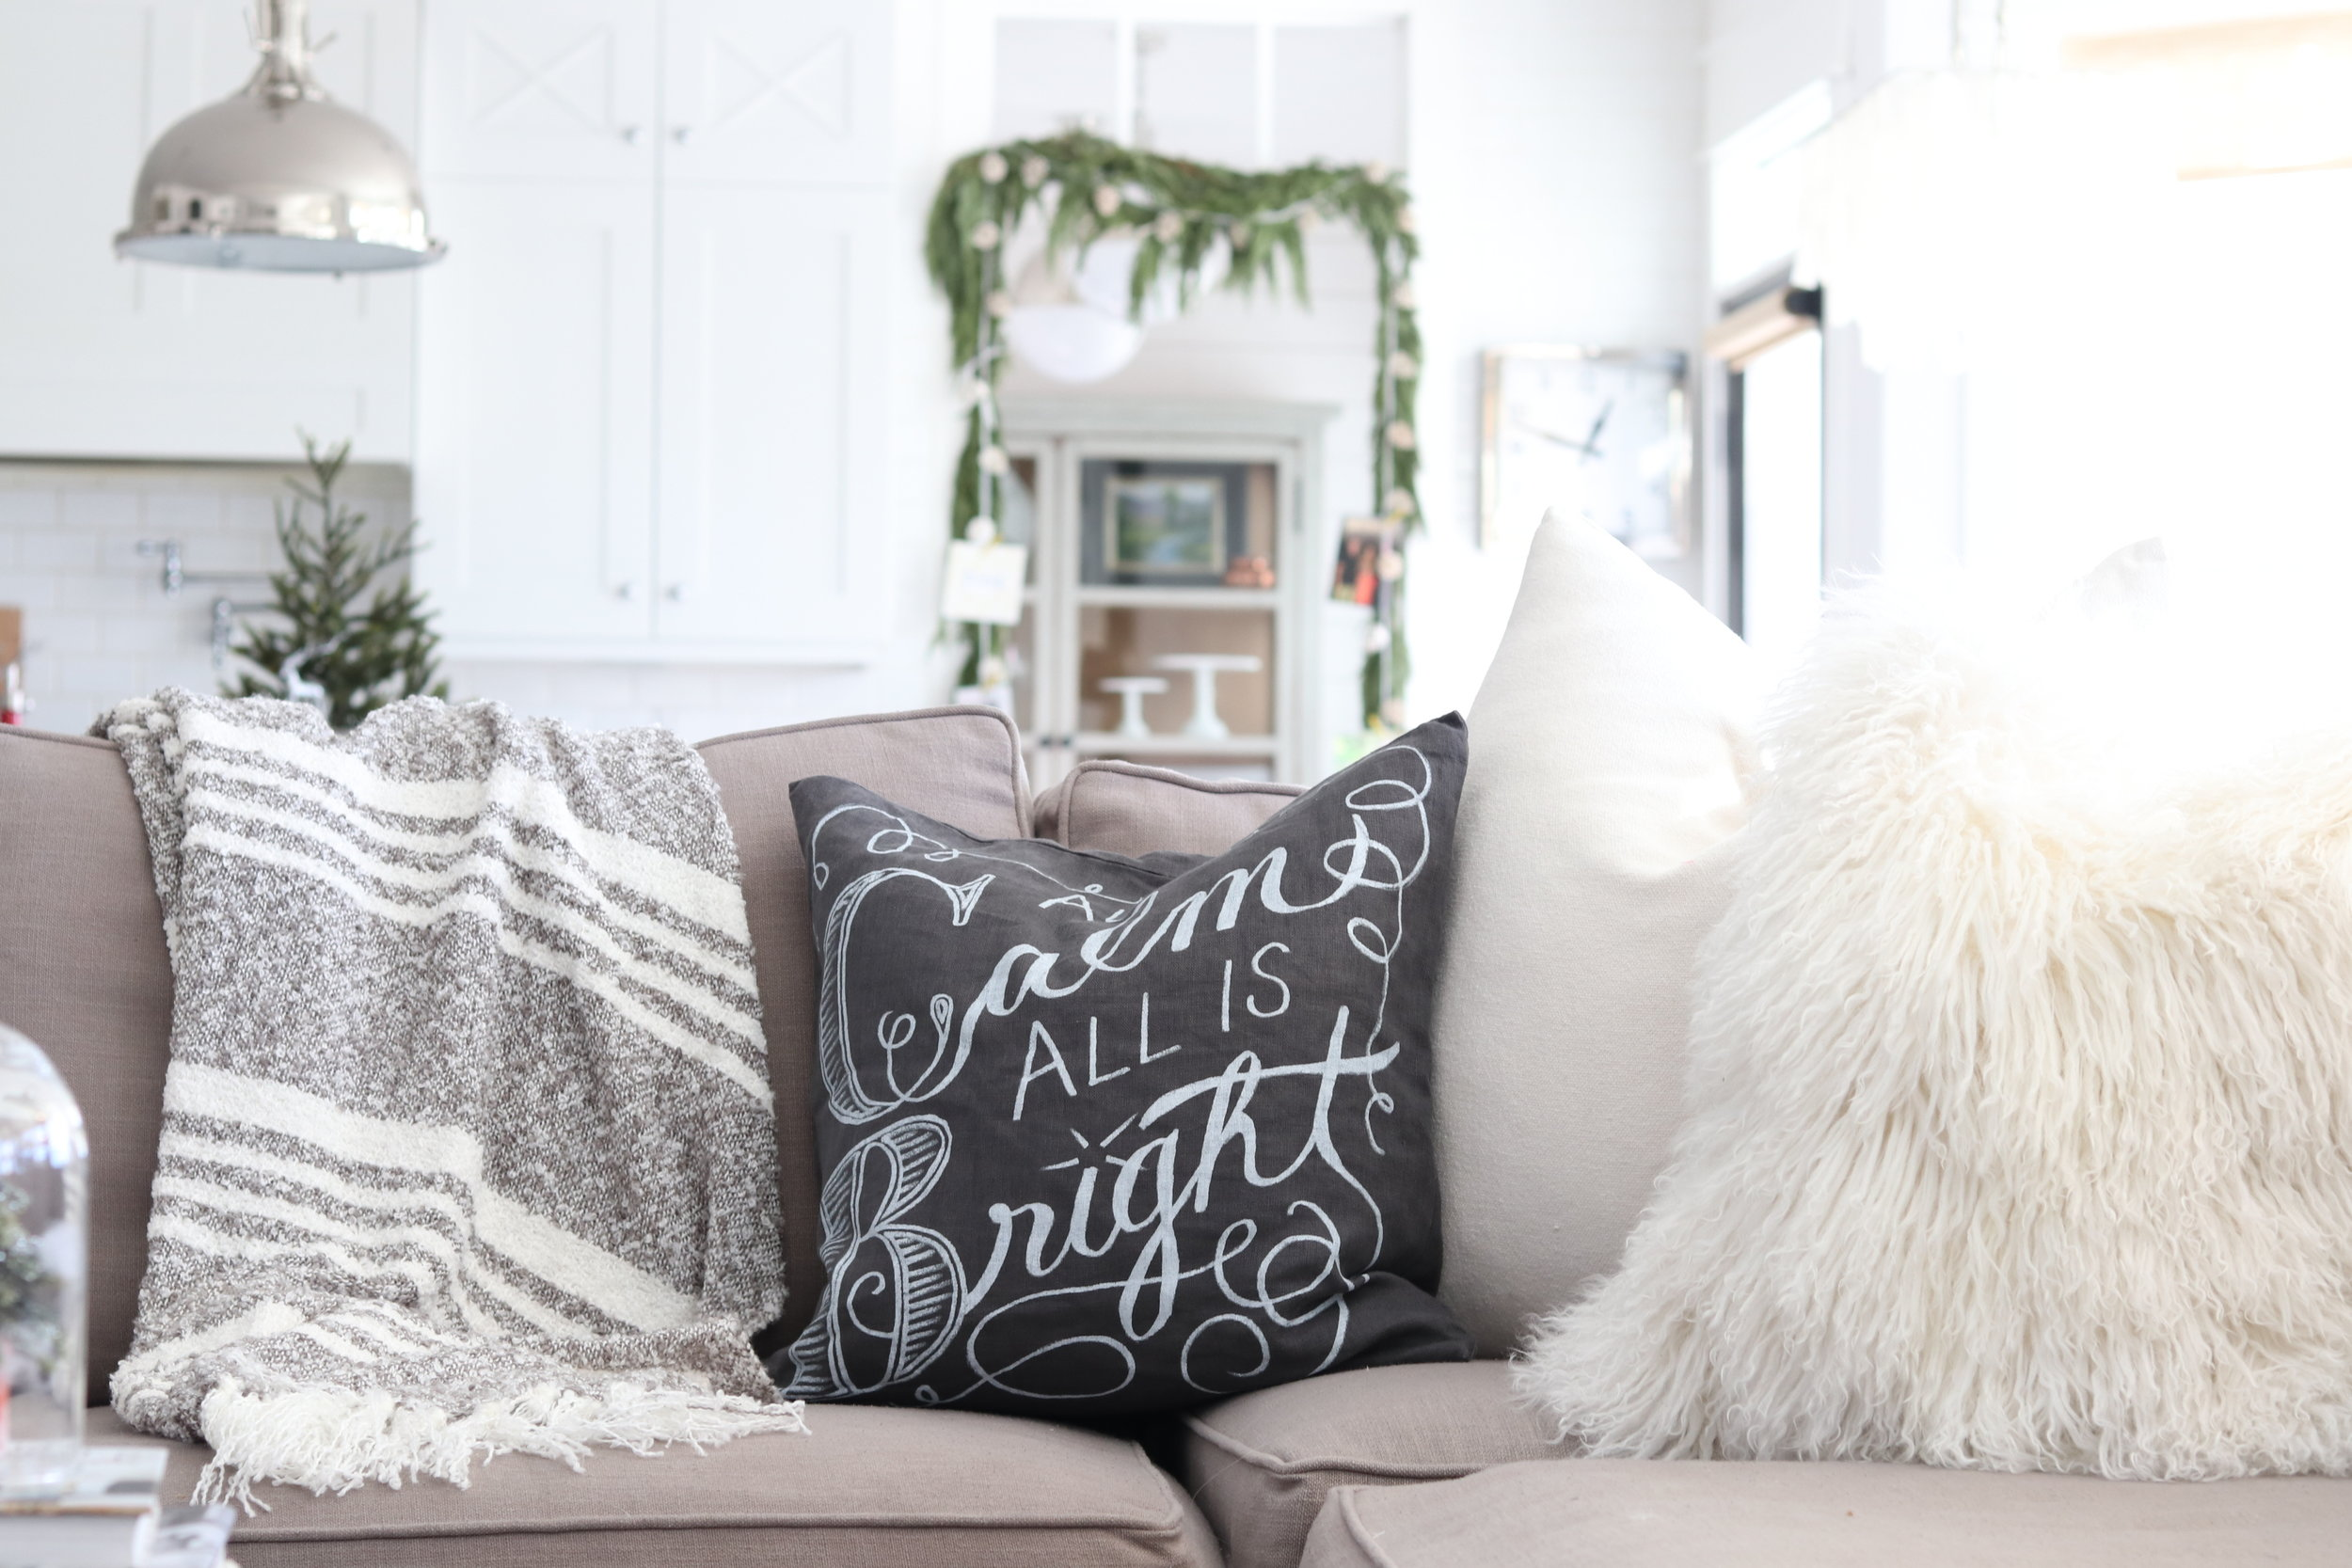 Who's ready for holiday movie marathons? Pillows, cozy throws and a Christmas movie reel on every channel? December is awesome sauce.